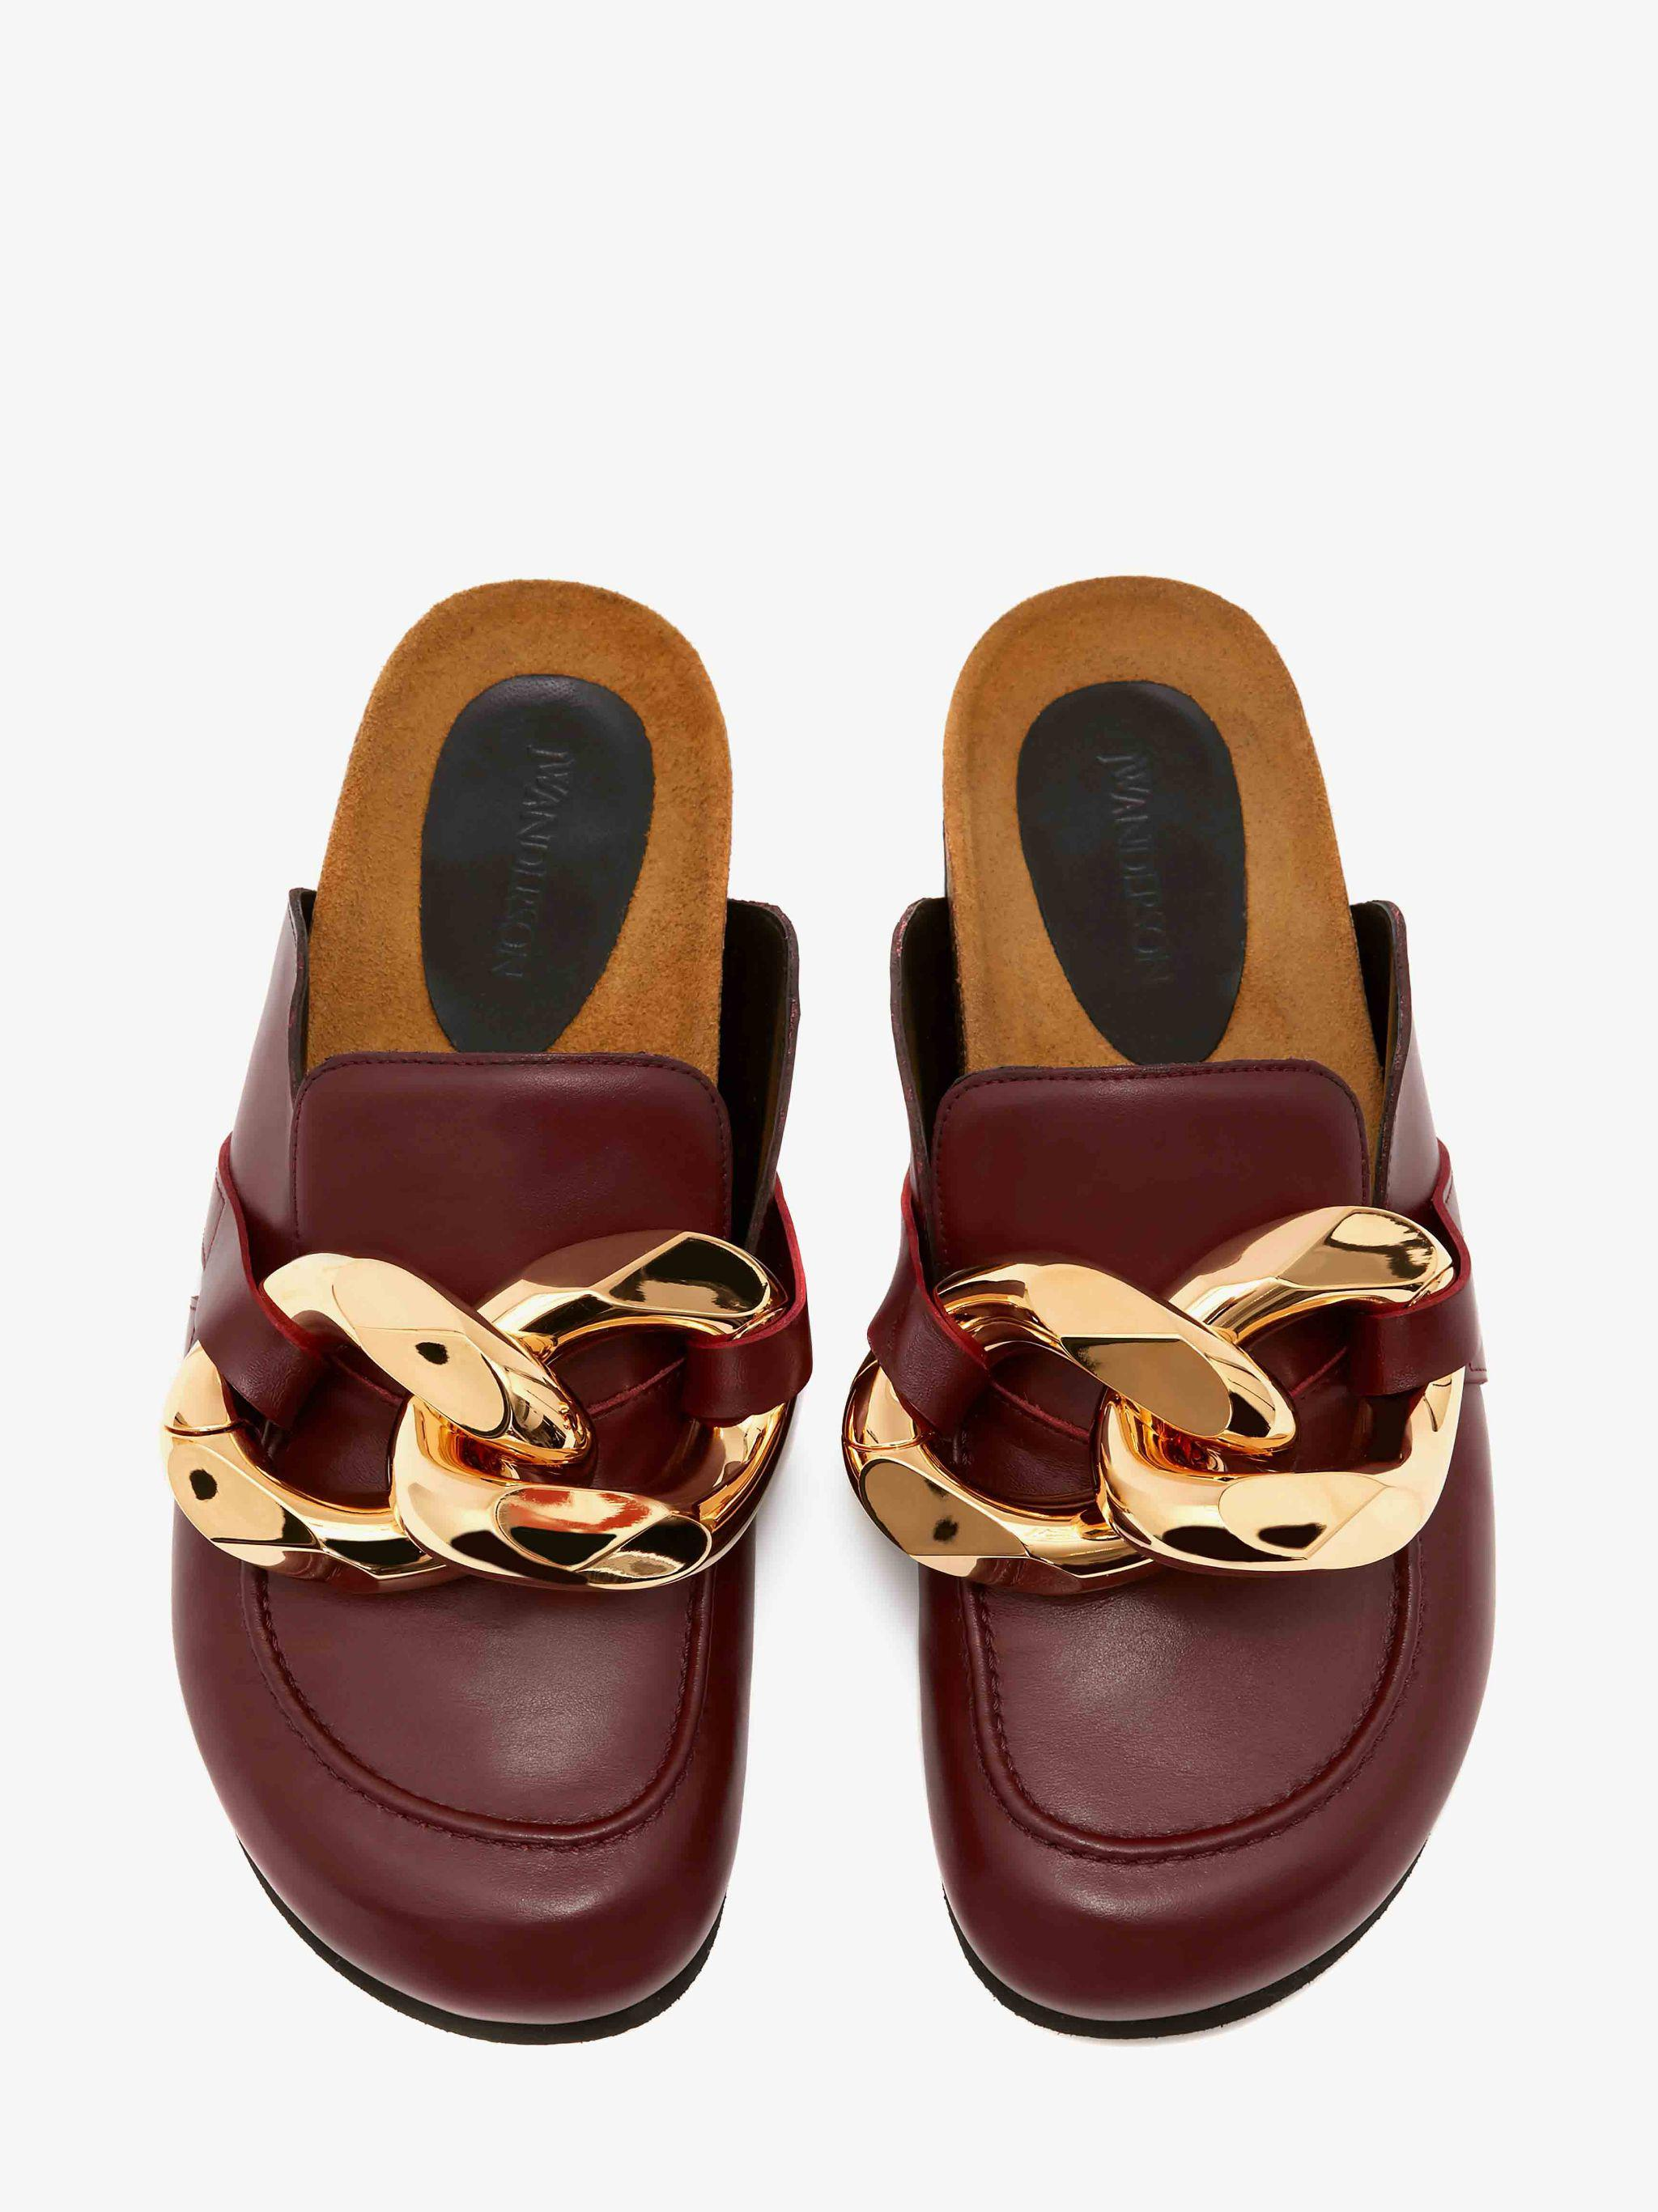 WOMEN'S CHAIN LOAFER 3